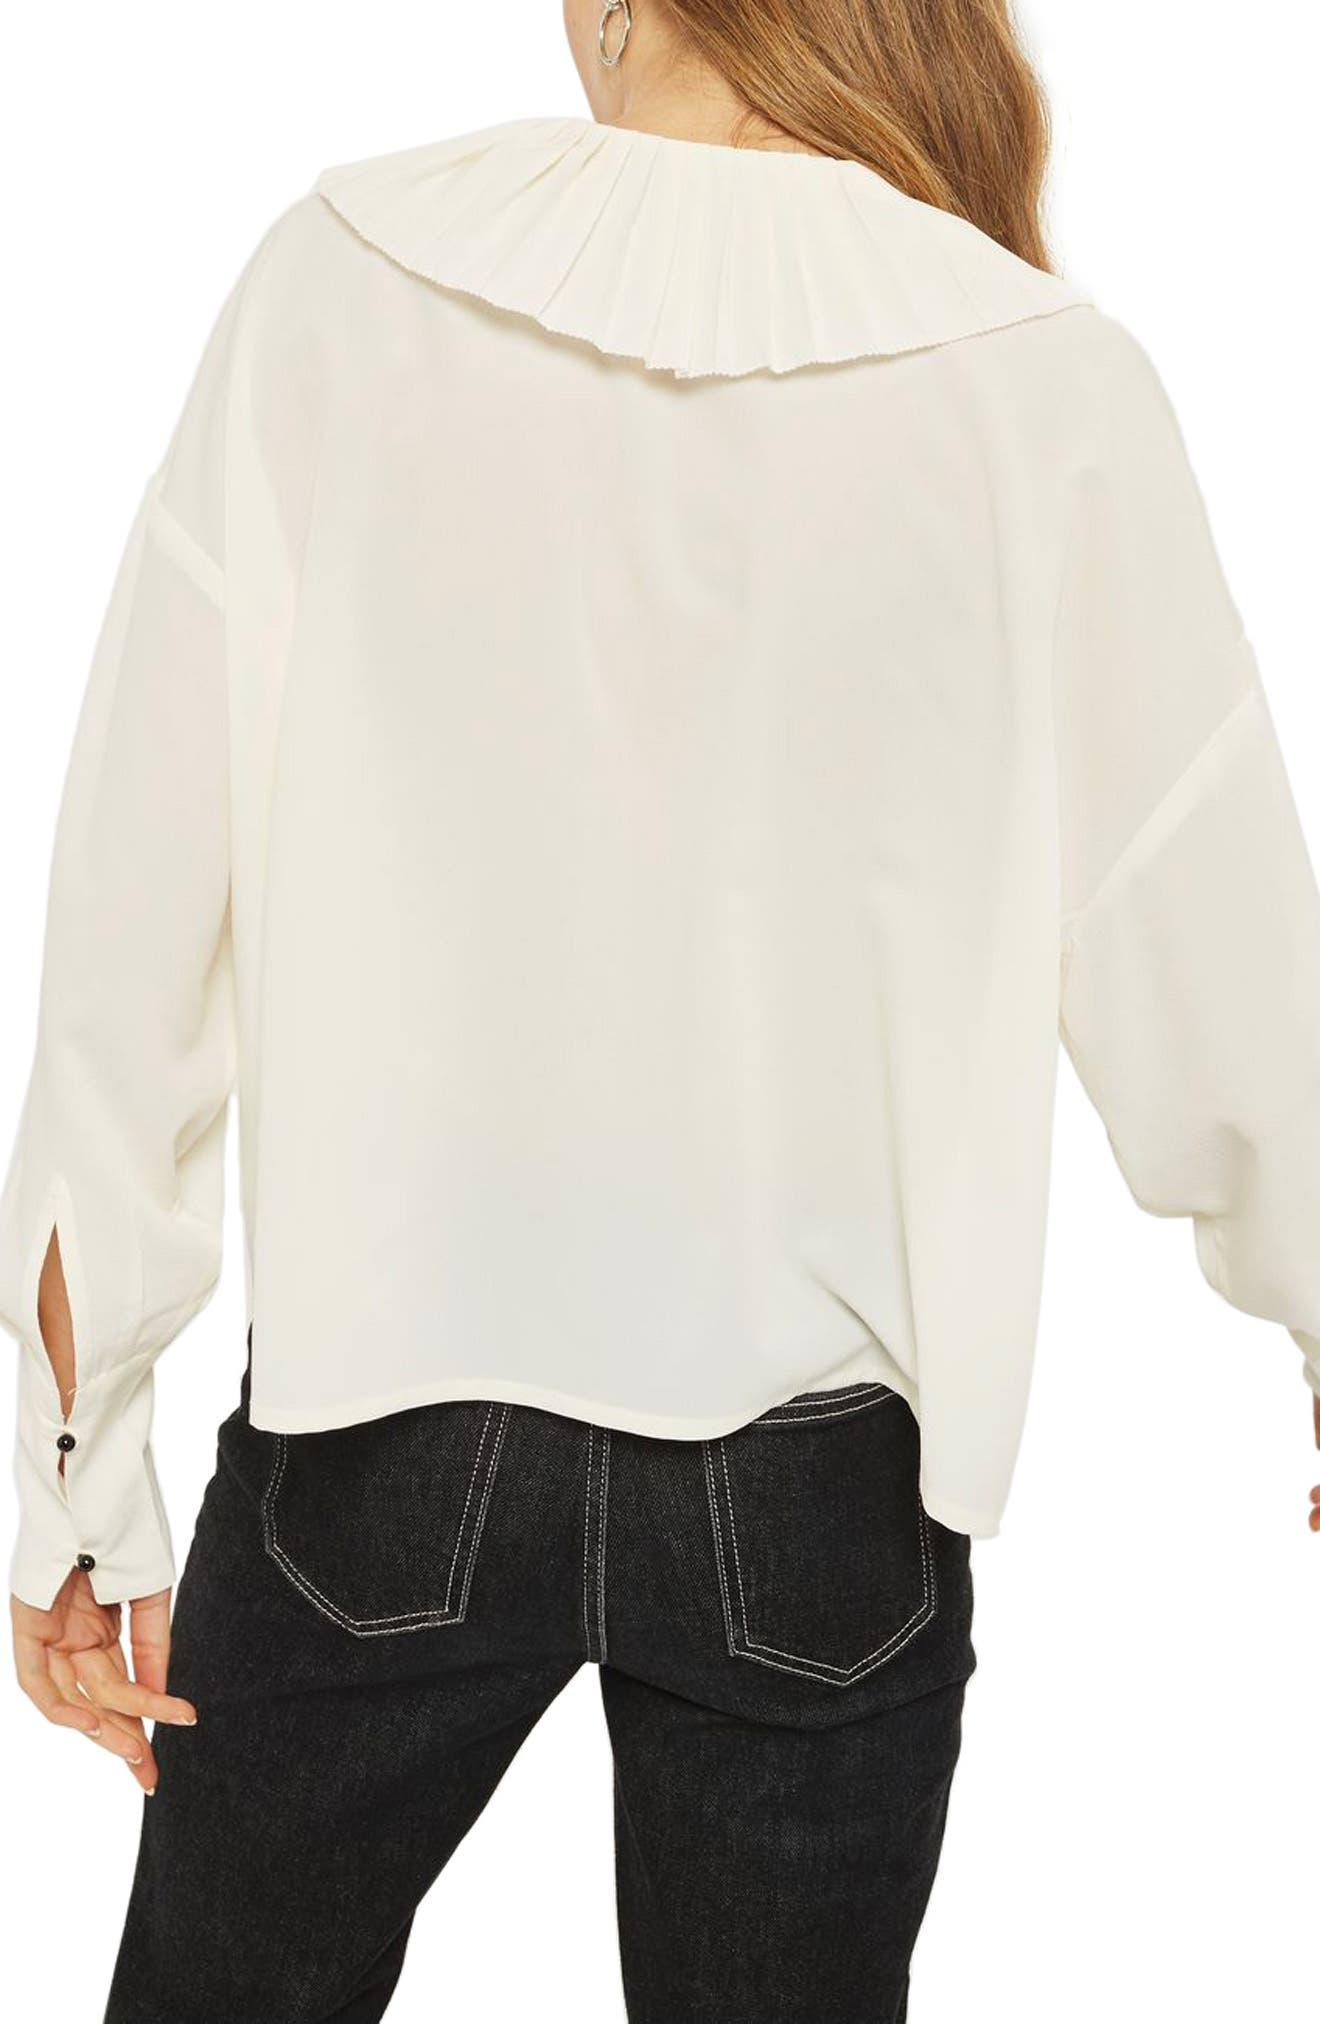 Pleated Collar Shirt,                             Alternate thumbnail 3, color,                             Ivory